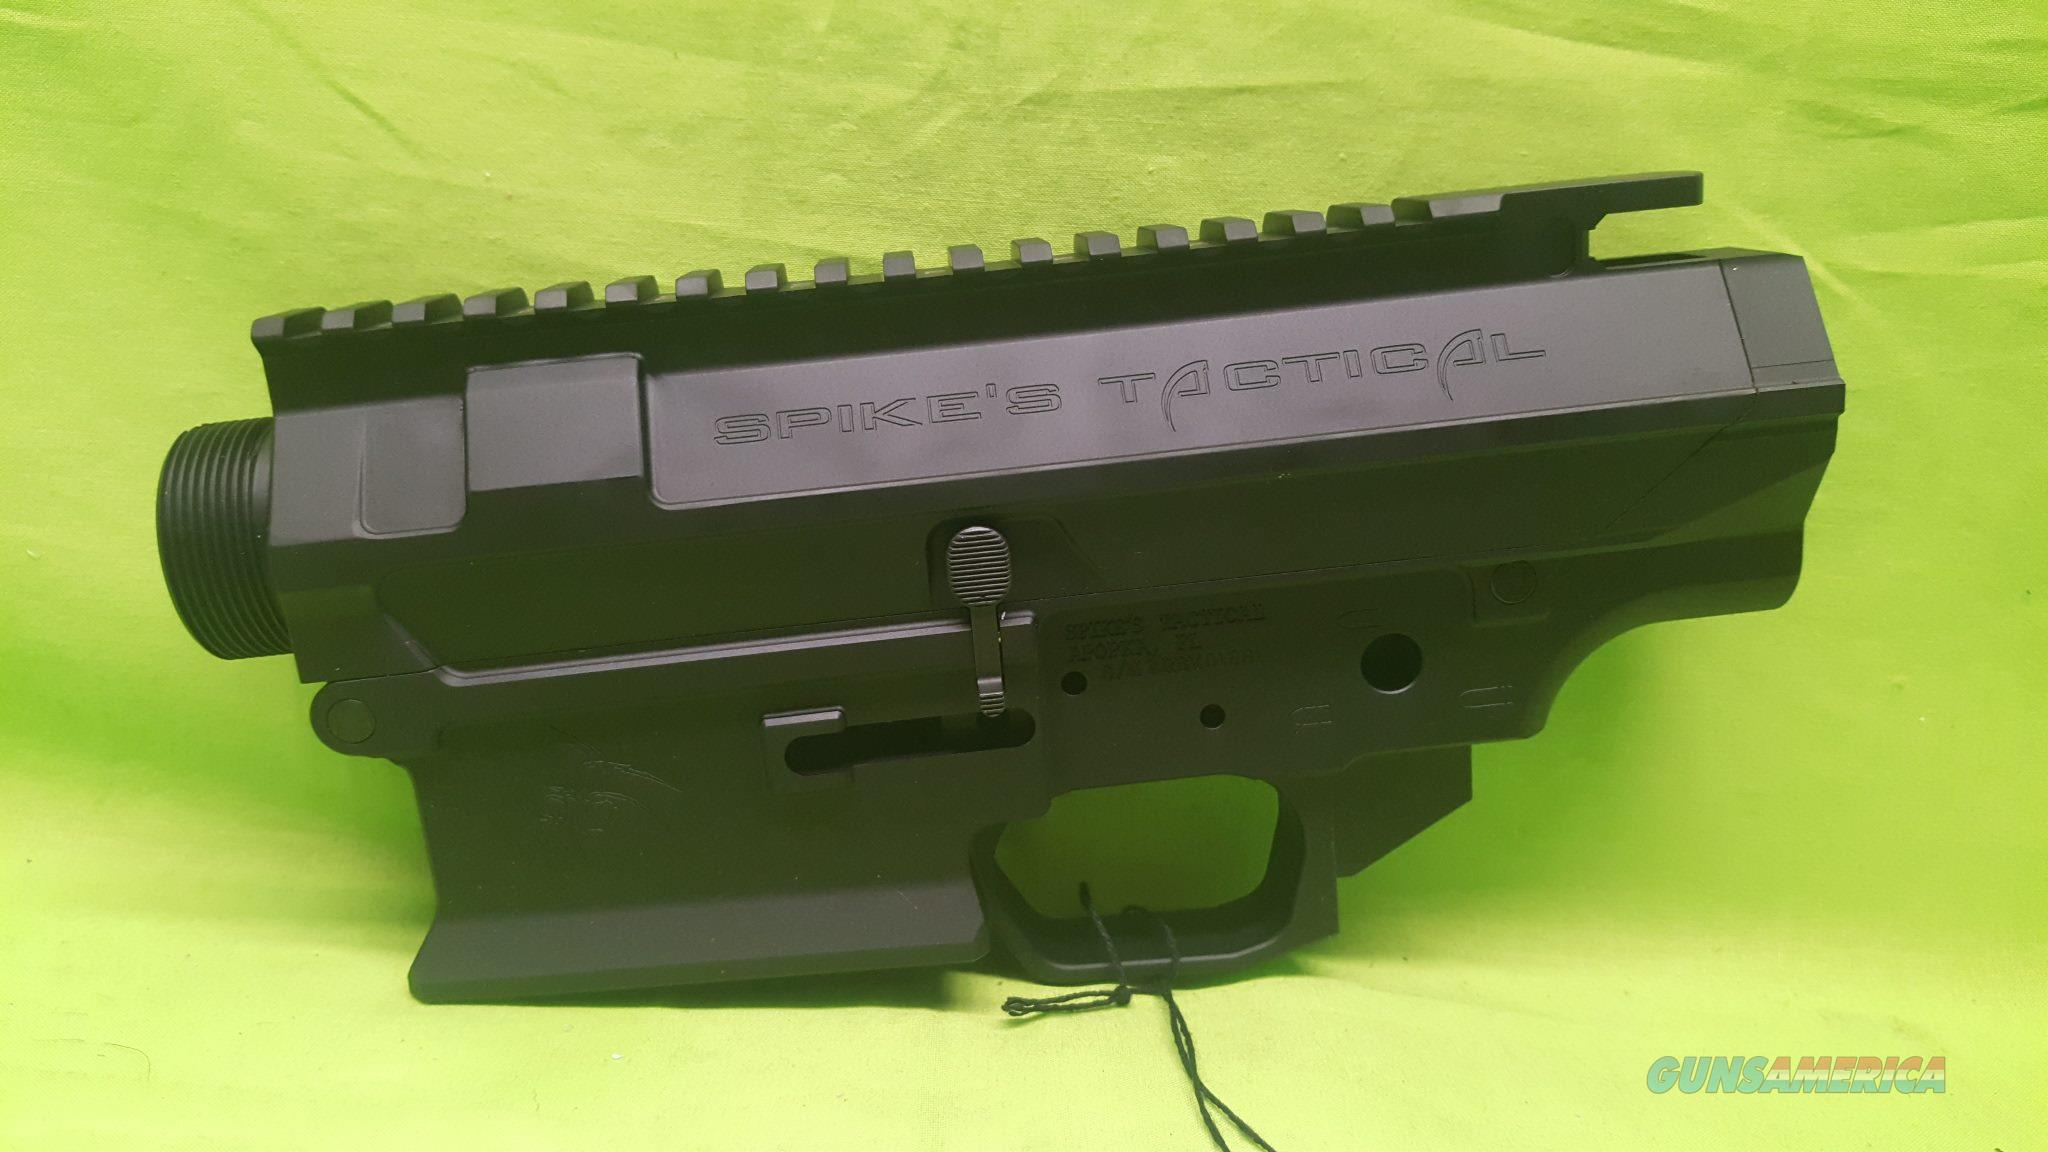 SPIKES STRIPPED 308 762 UPPER / LOWER LIVEWIRE BLK  Guns > Rifles > AR-15 Rifles - Small Manufacturers > Lower Only